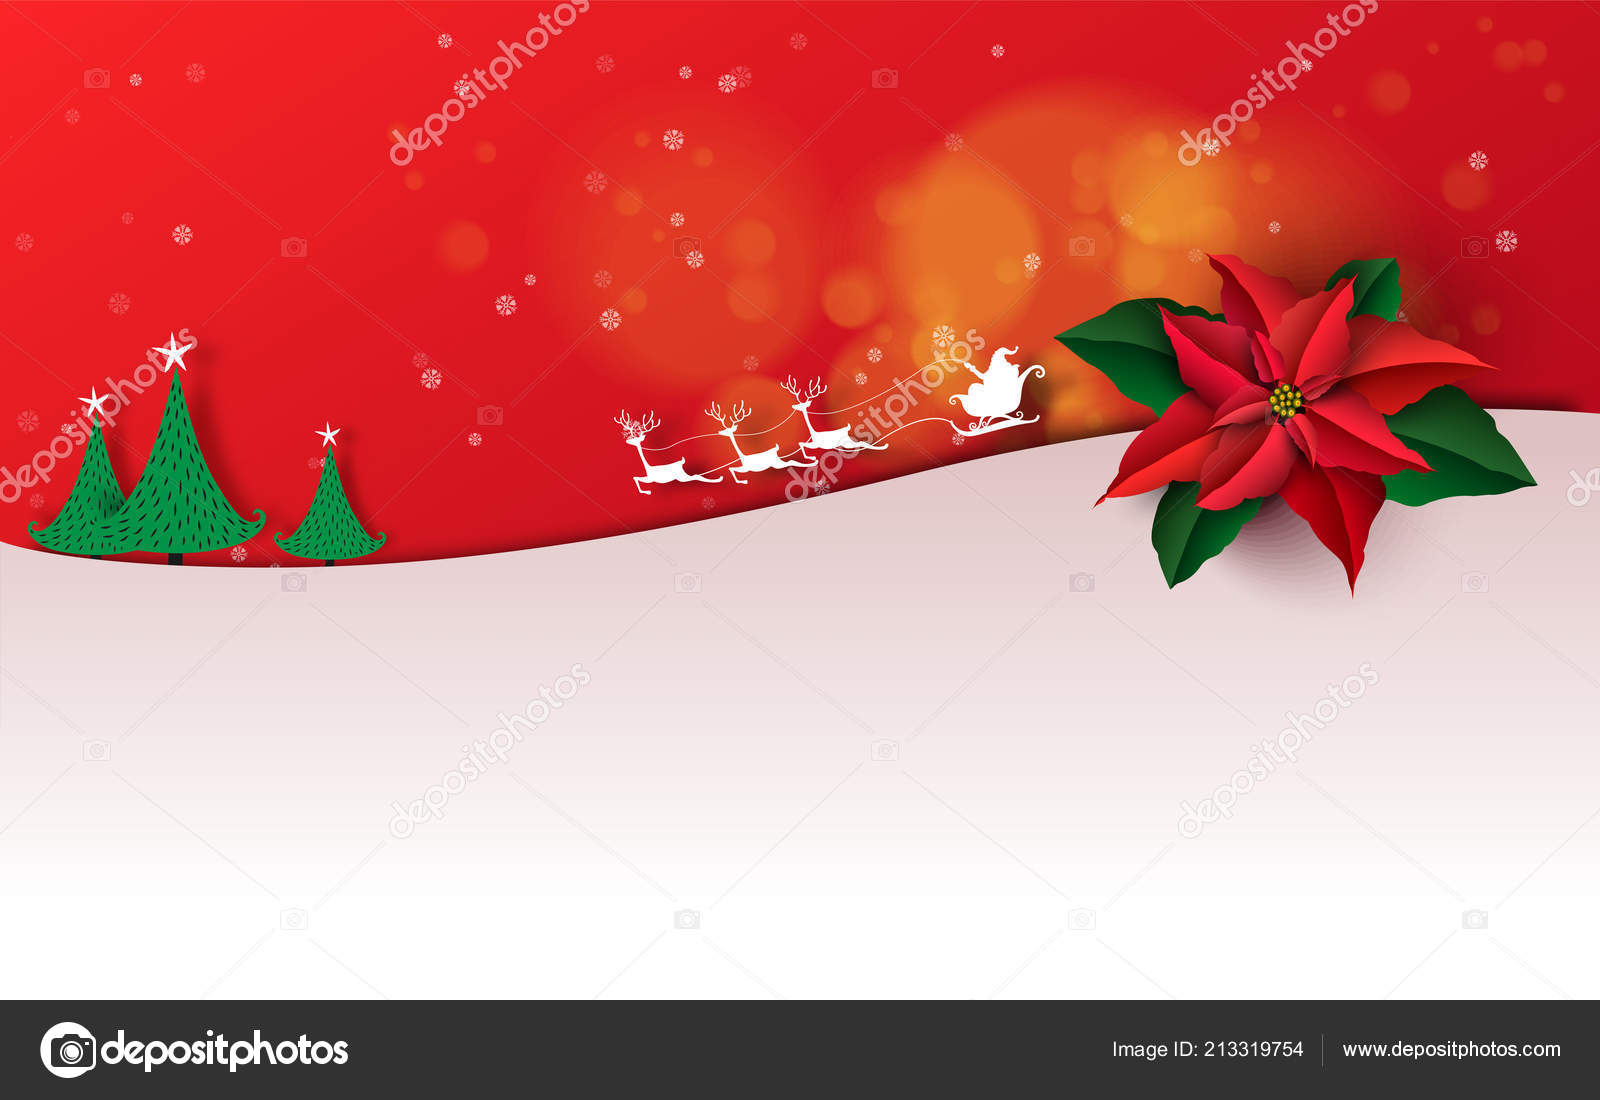 merry christmas happy new year christmas sale holiday background paper stock vector